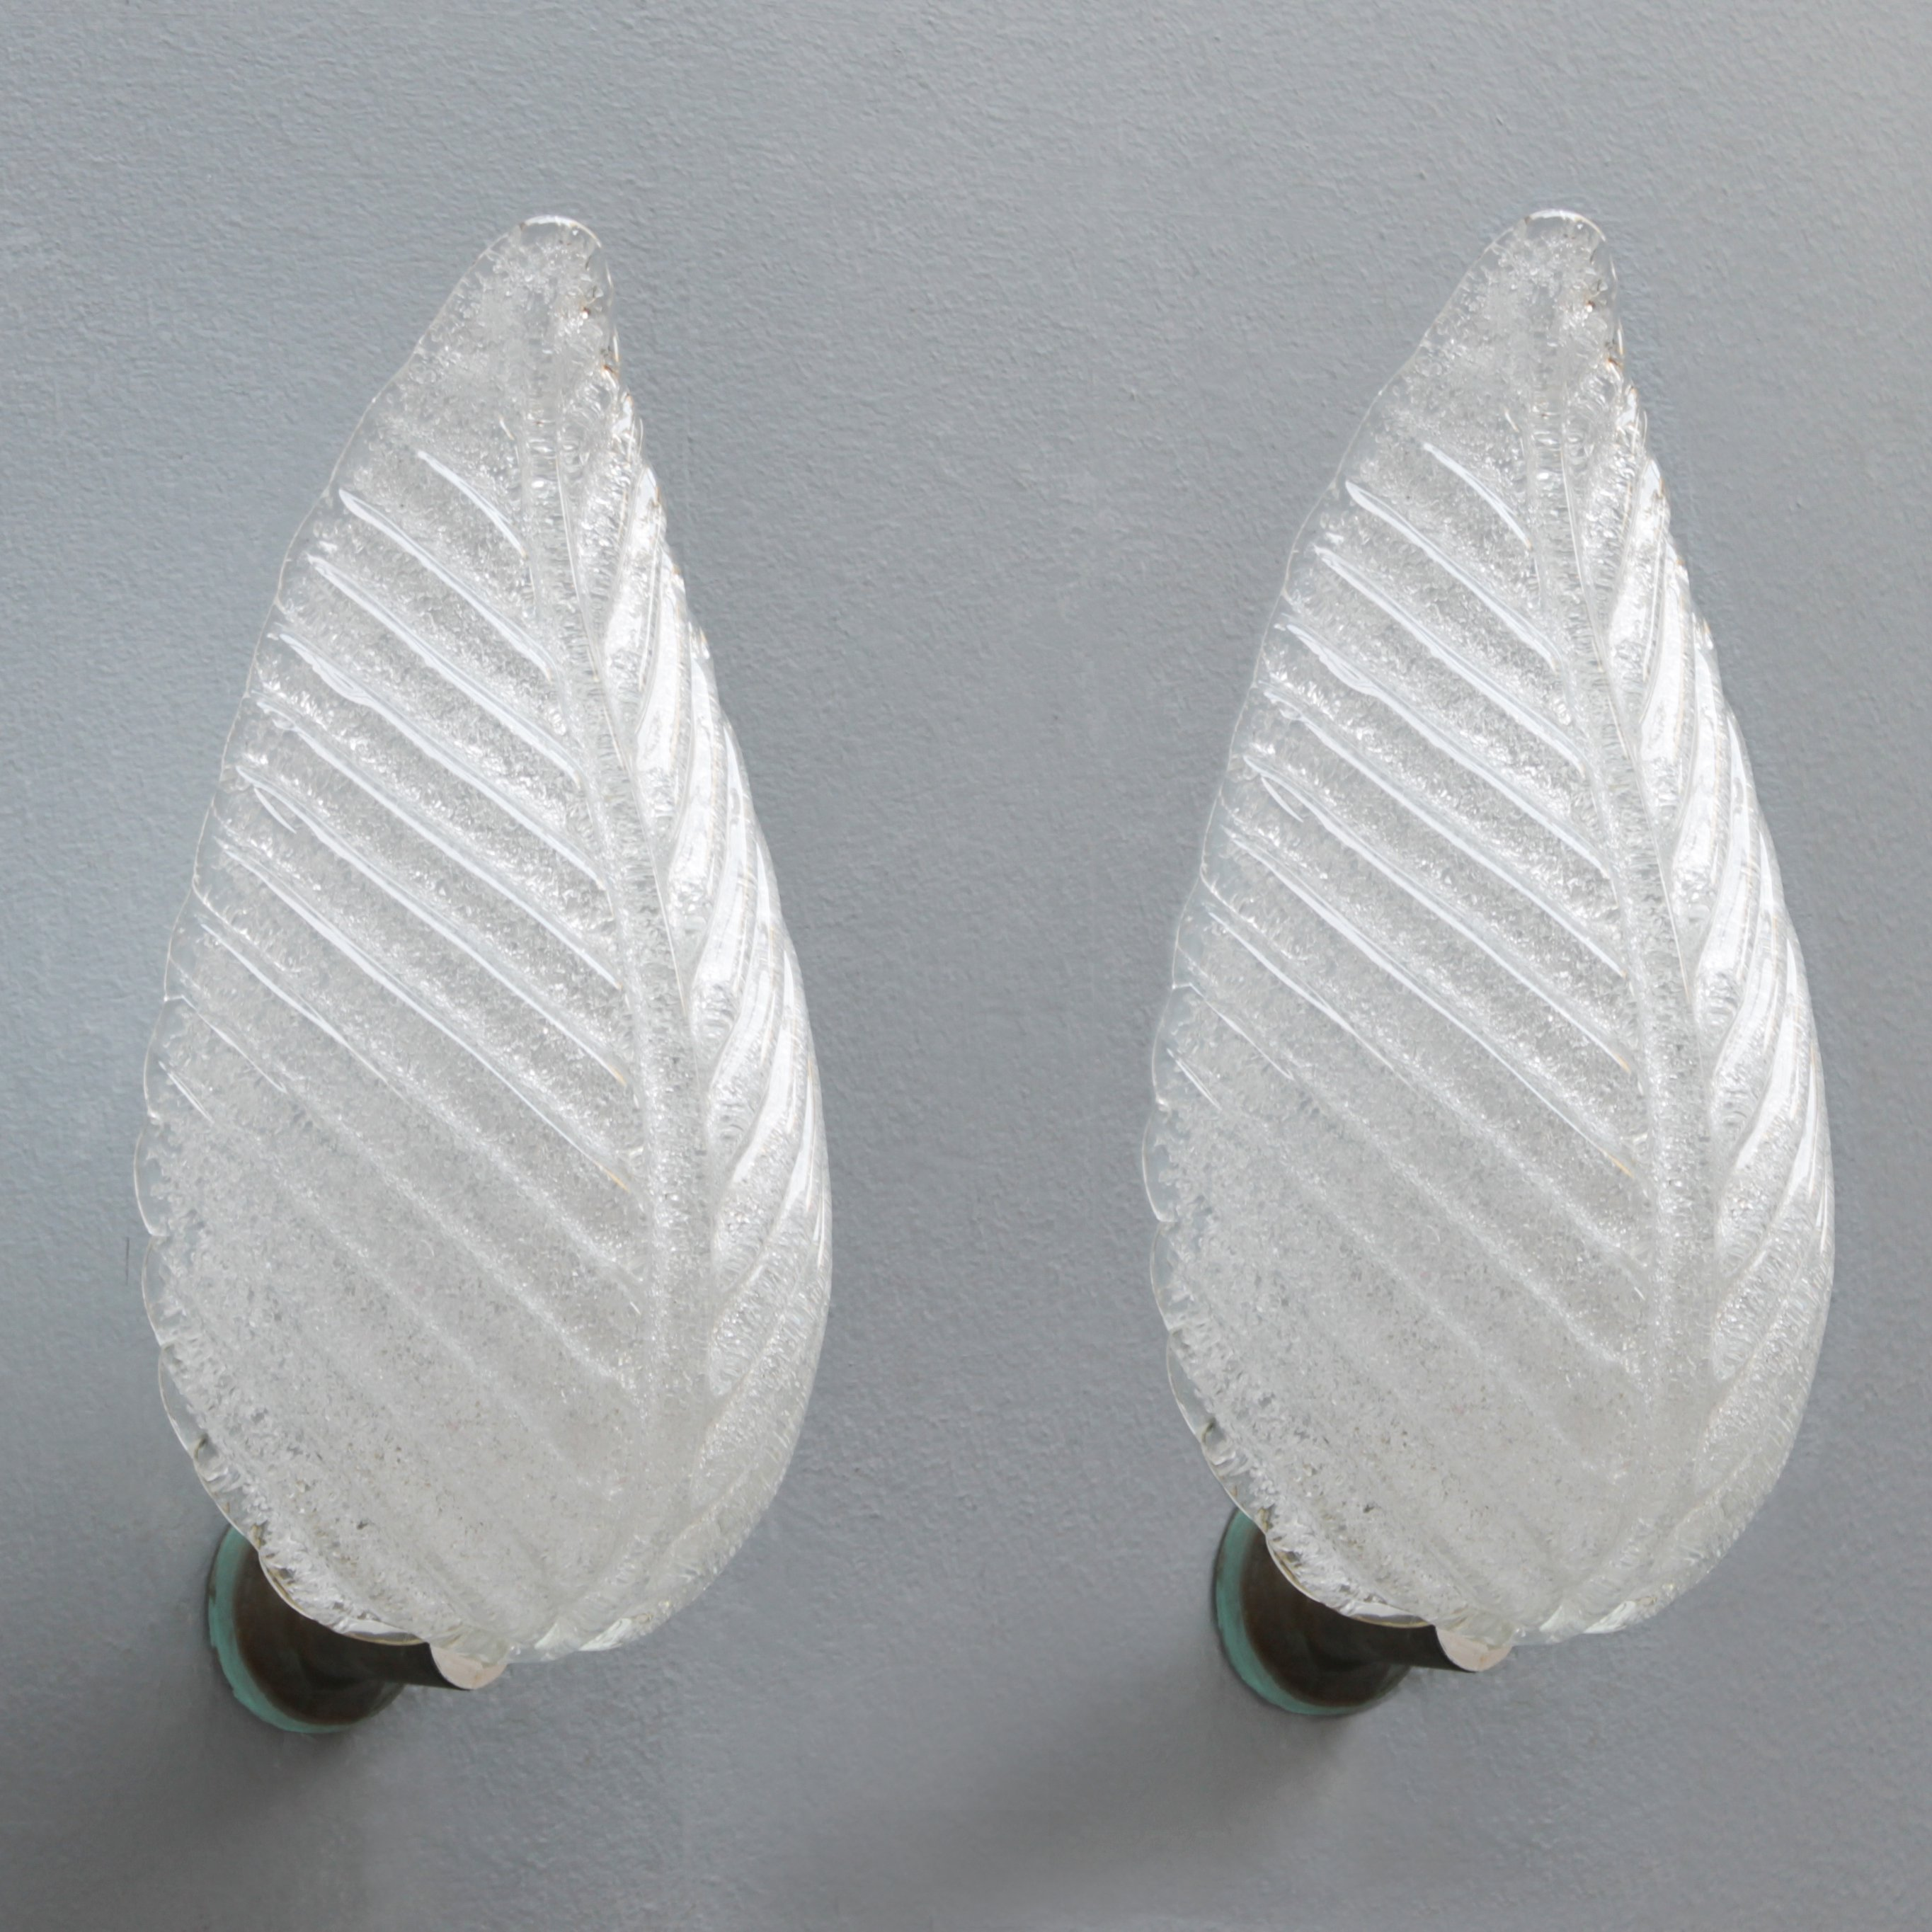 Lot 2 pendant silver leaf silver leaf Murano style identical to the photo